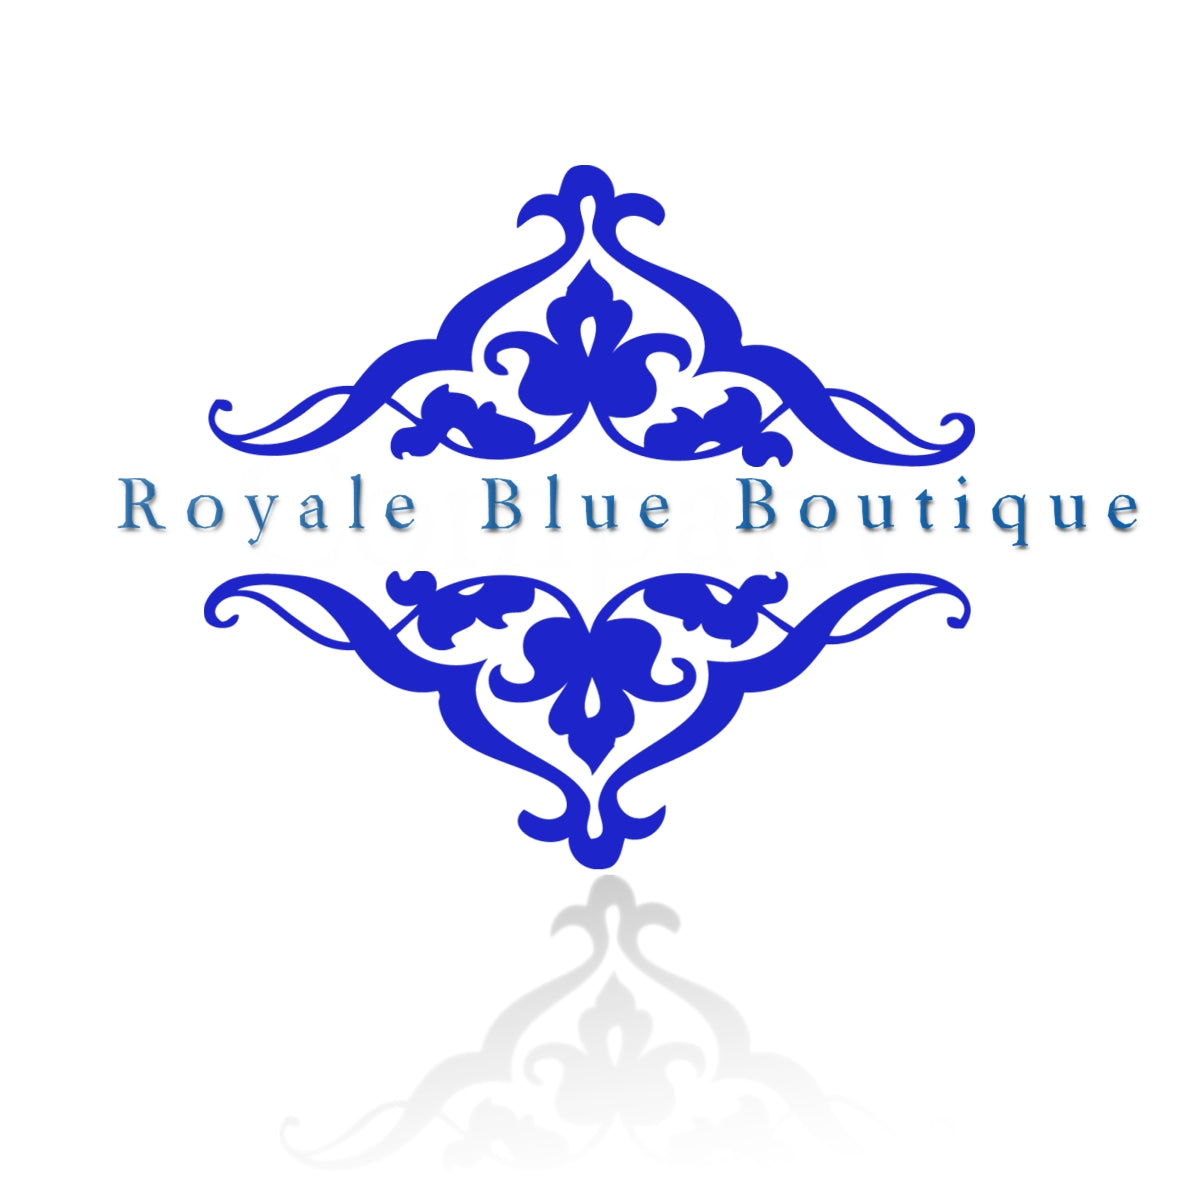 Royal Blue Boutique